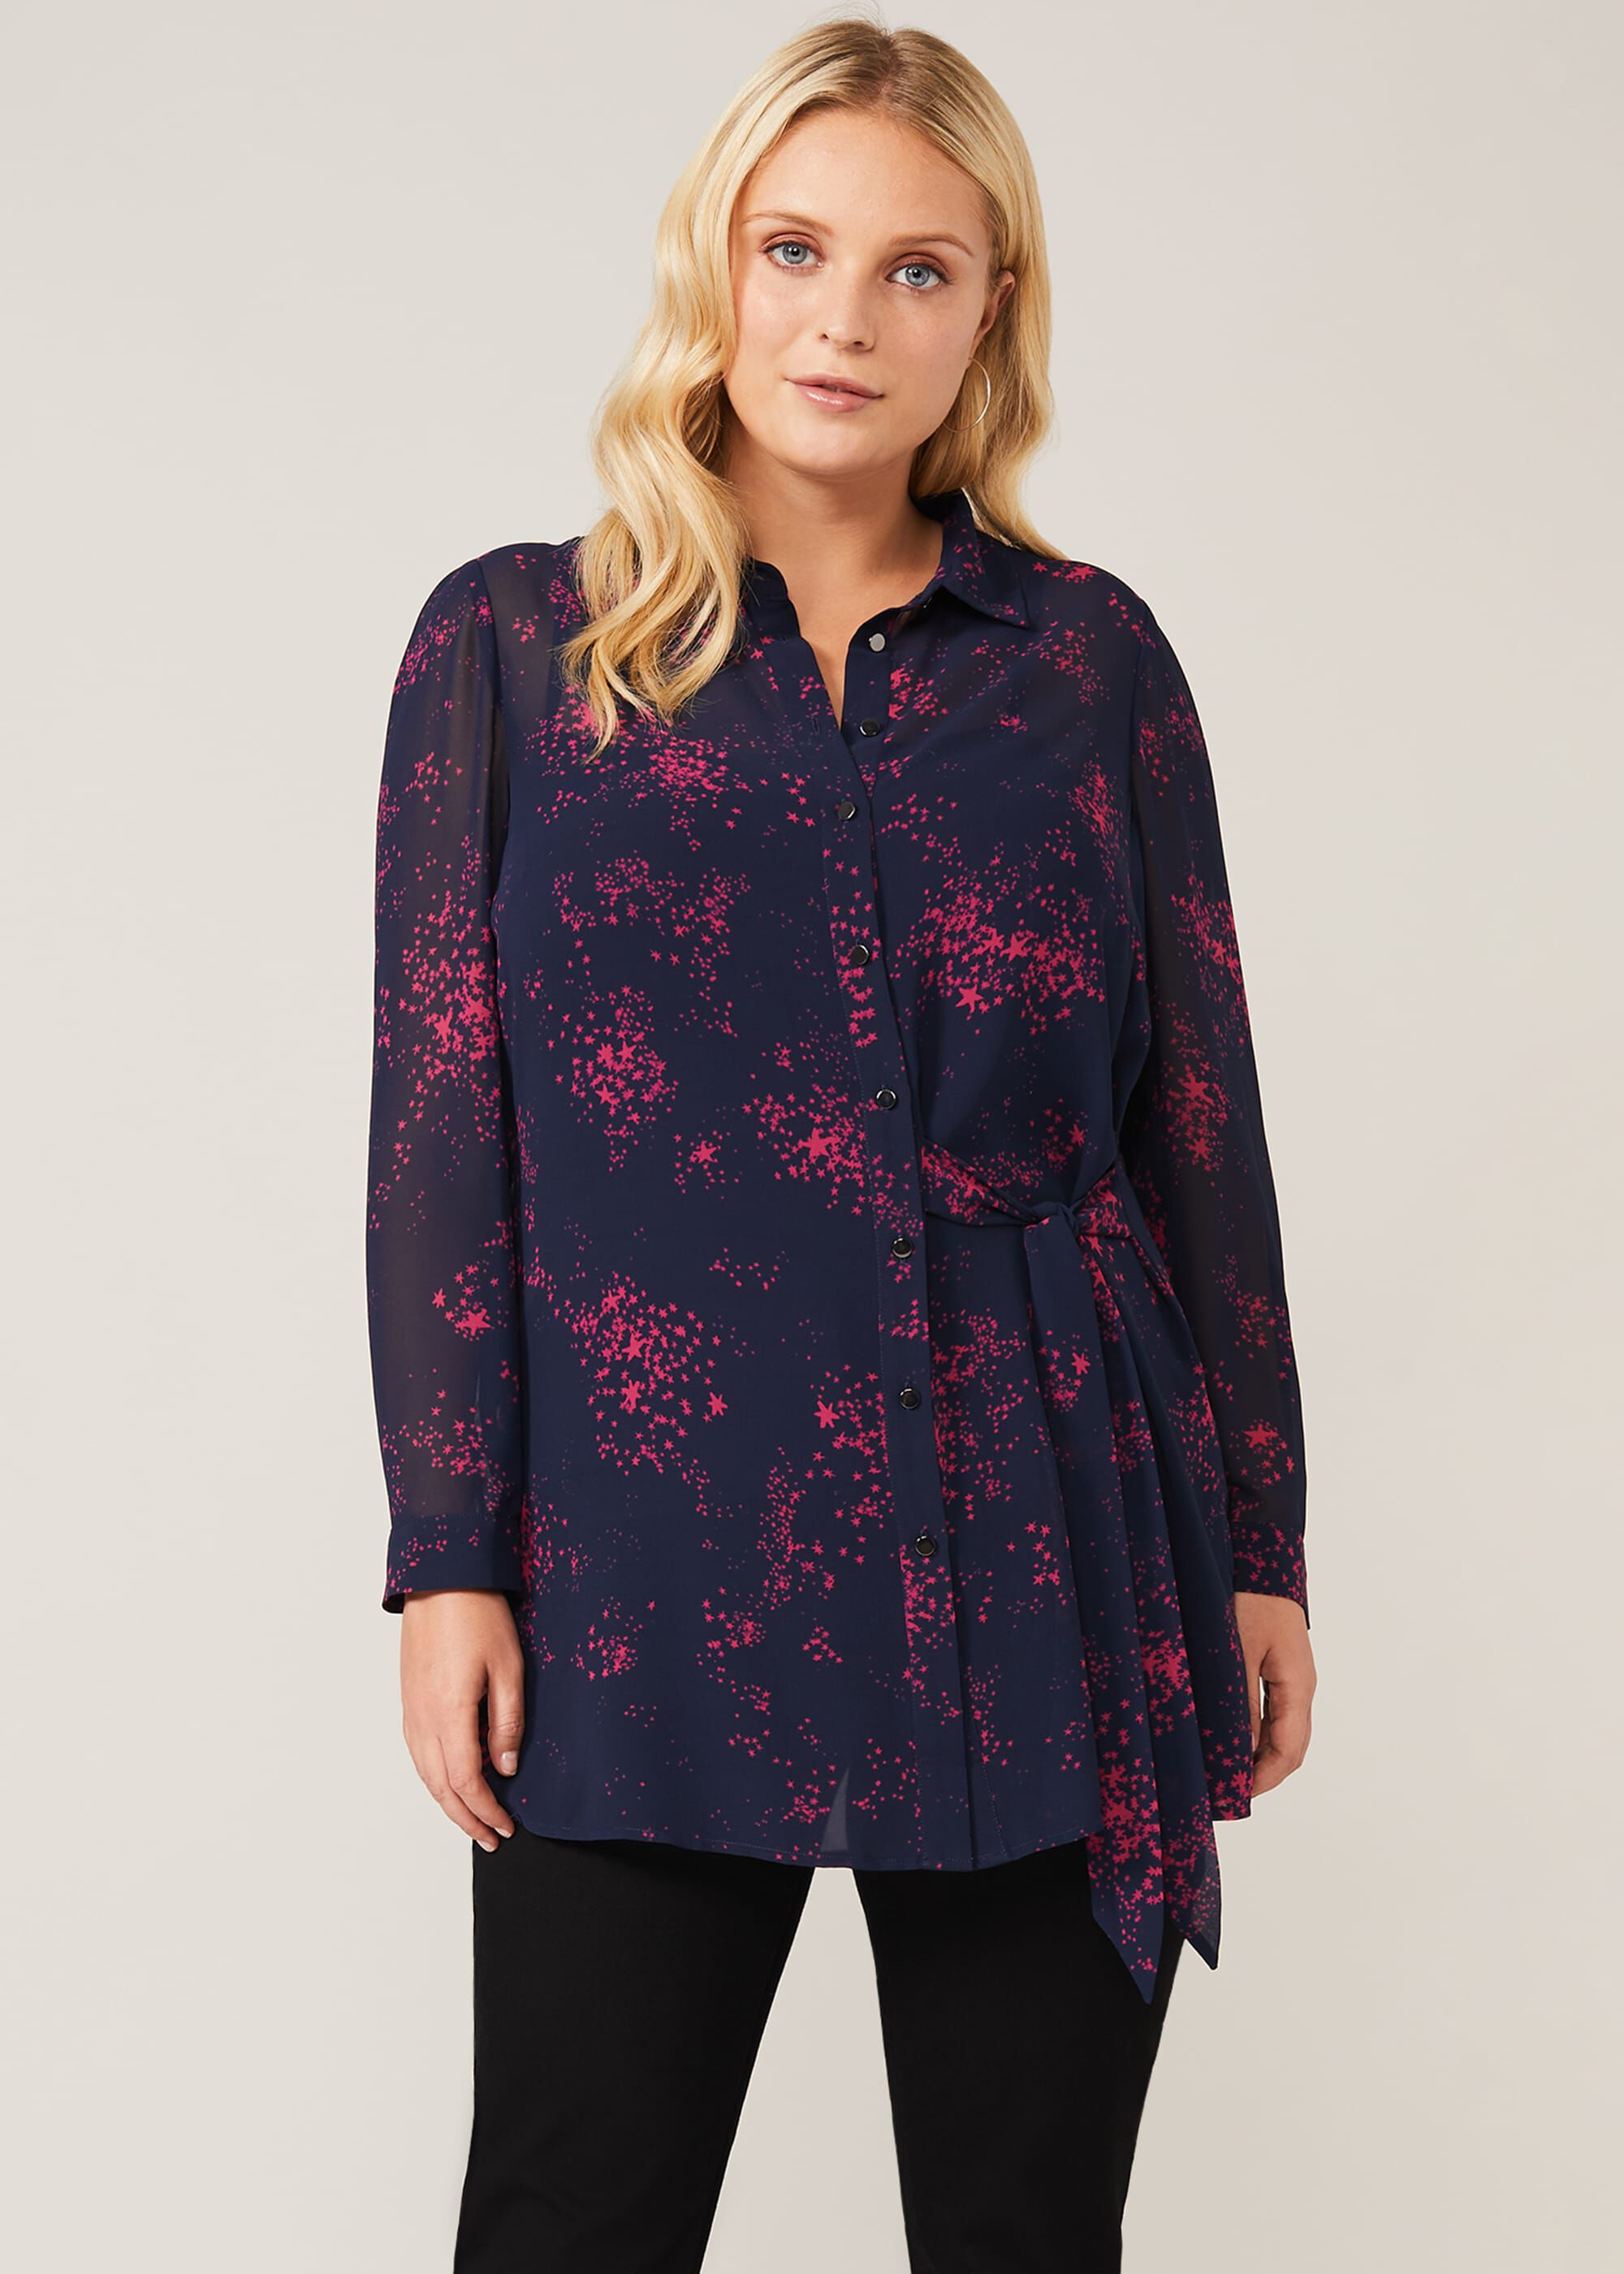 Studio 8 Lucy Star Print Shirt, Blue, Blouse